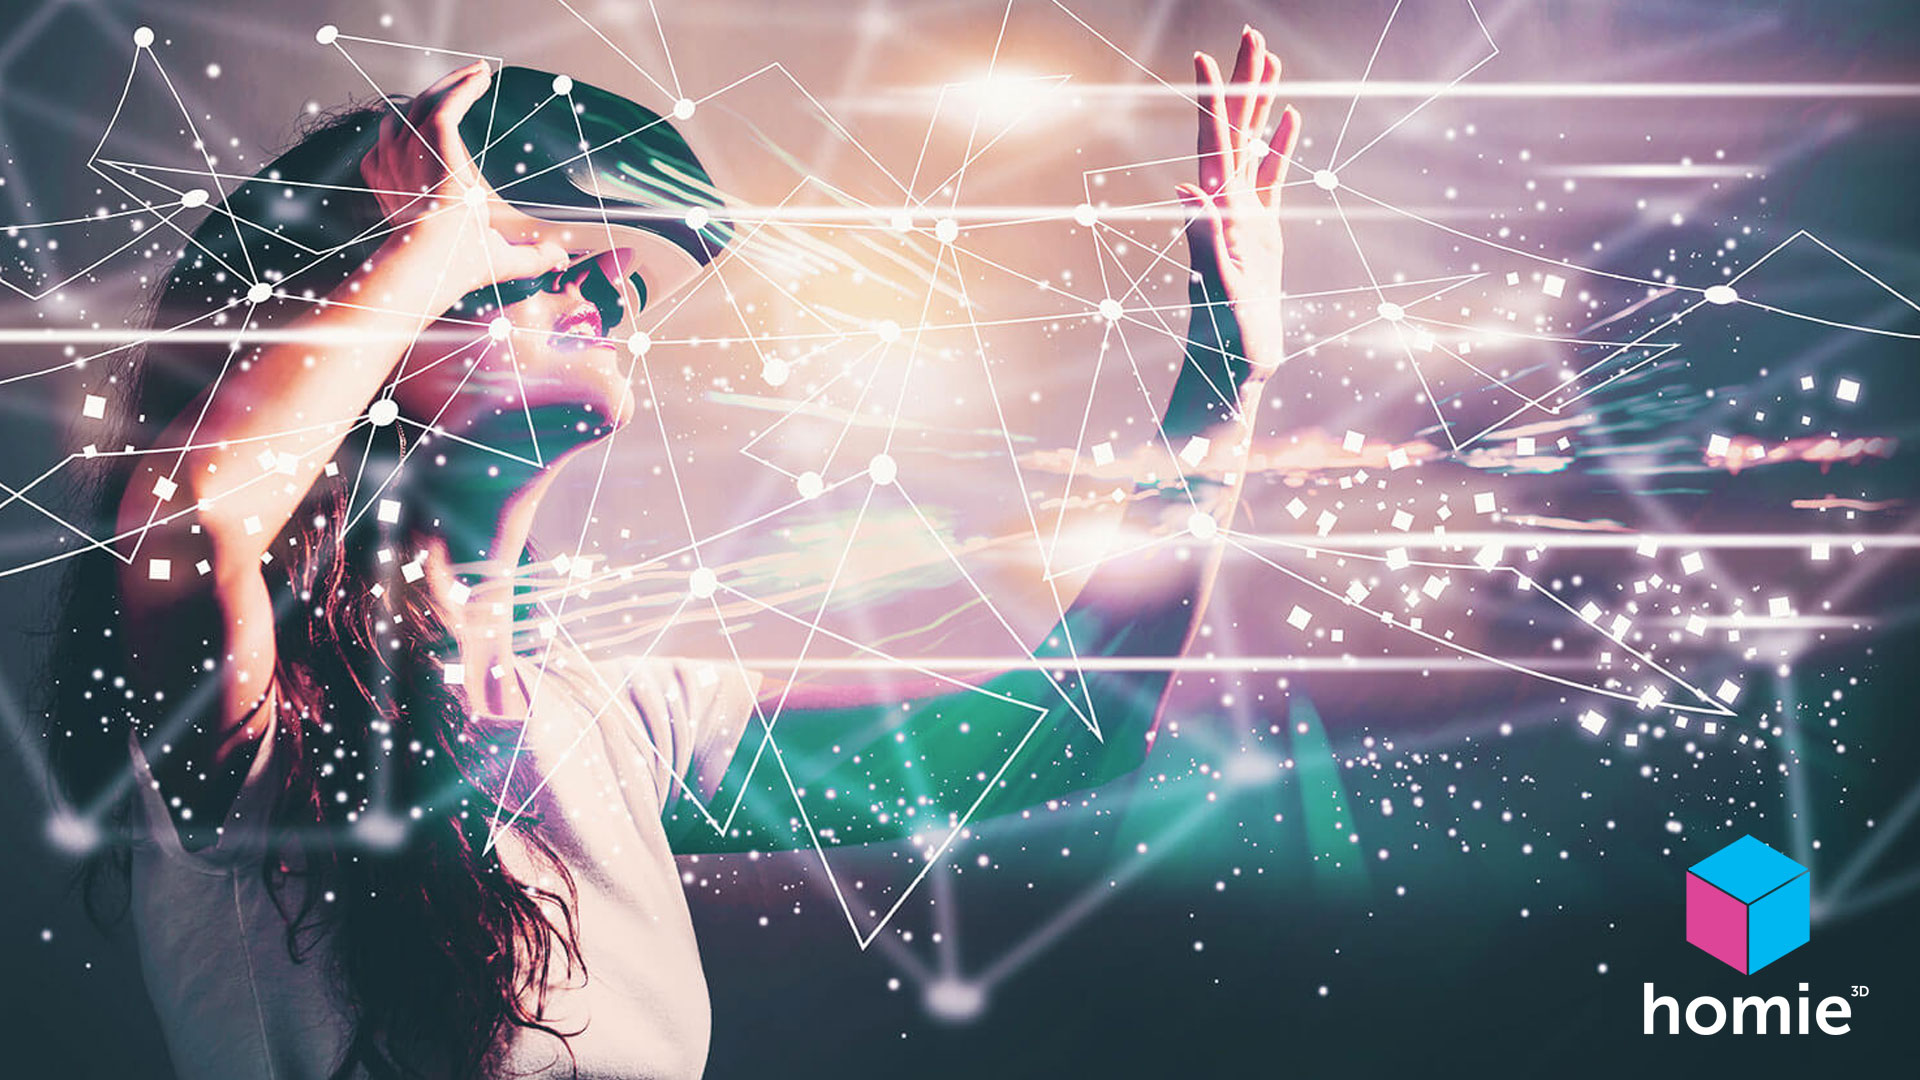 Immersive Environments - VR powering architectural visualizations